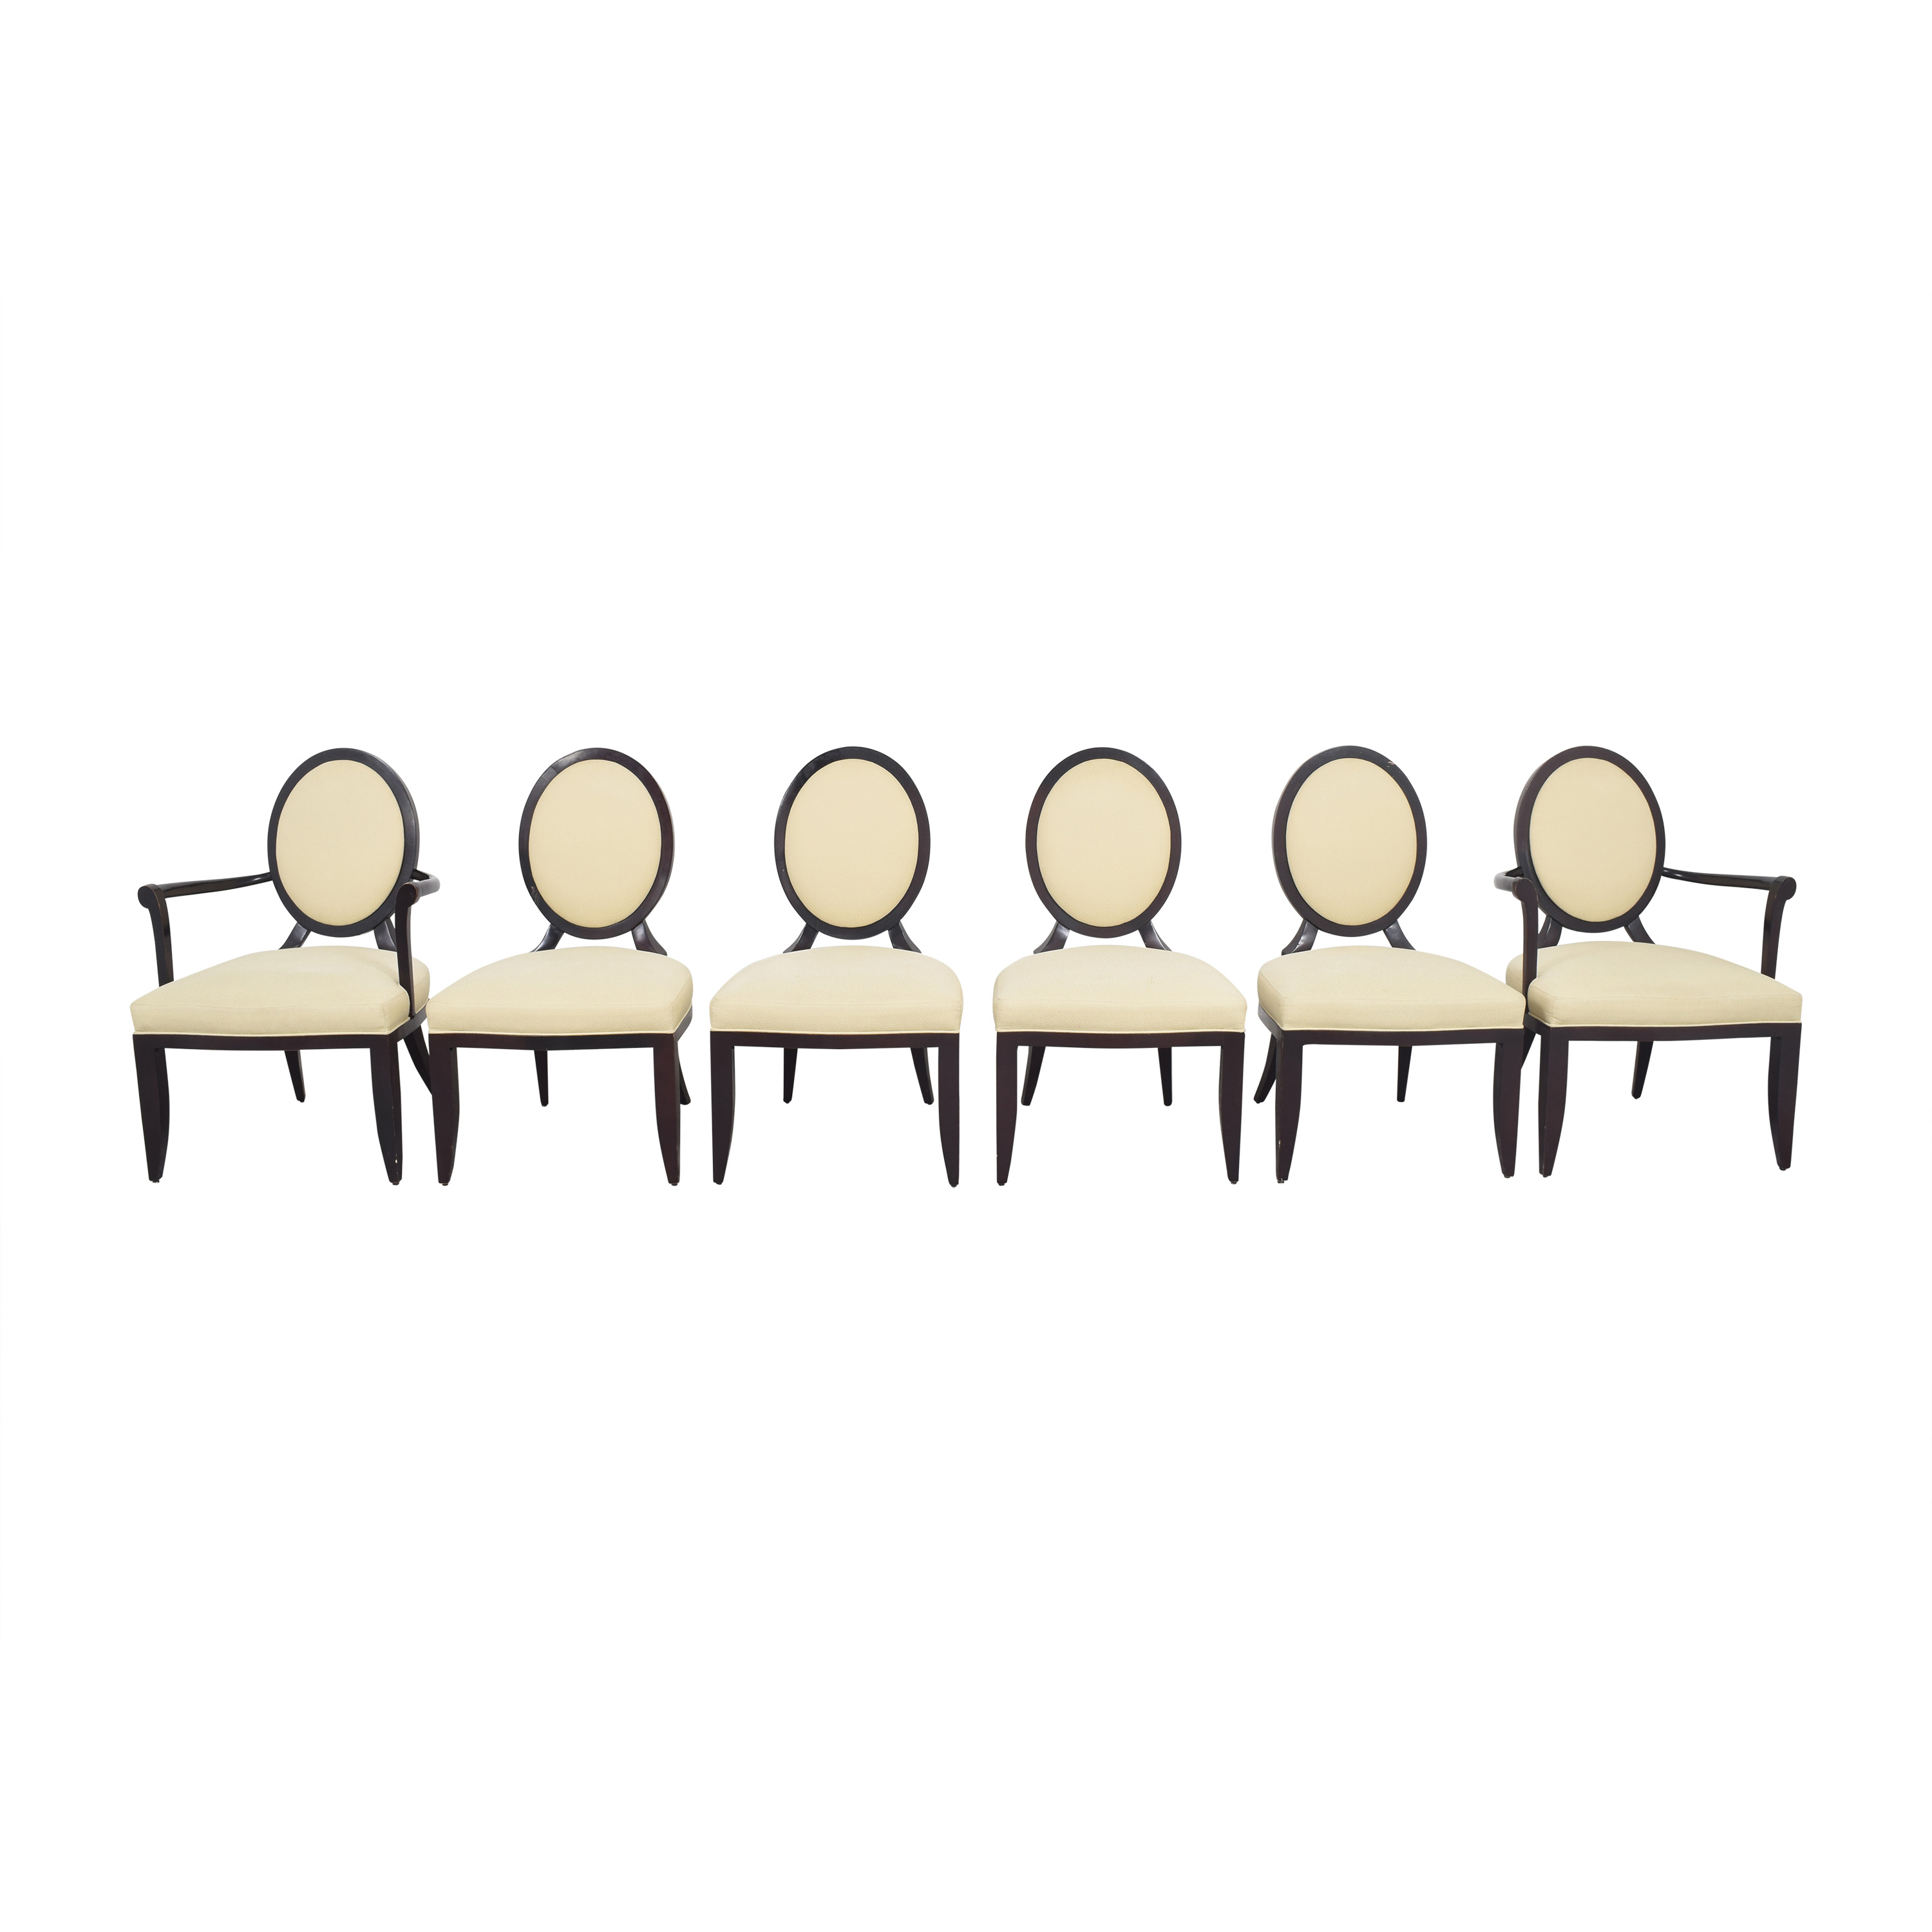 Baker Furniture Barbara Barry for Baker Furniture Oval X Back Dining Chairs nyc